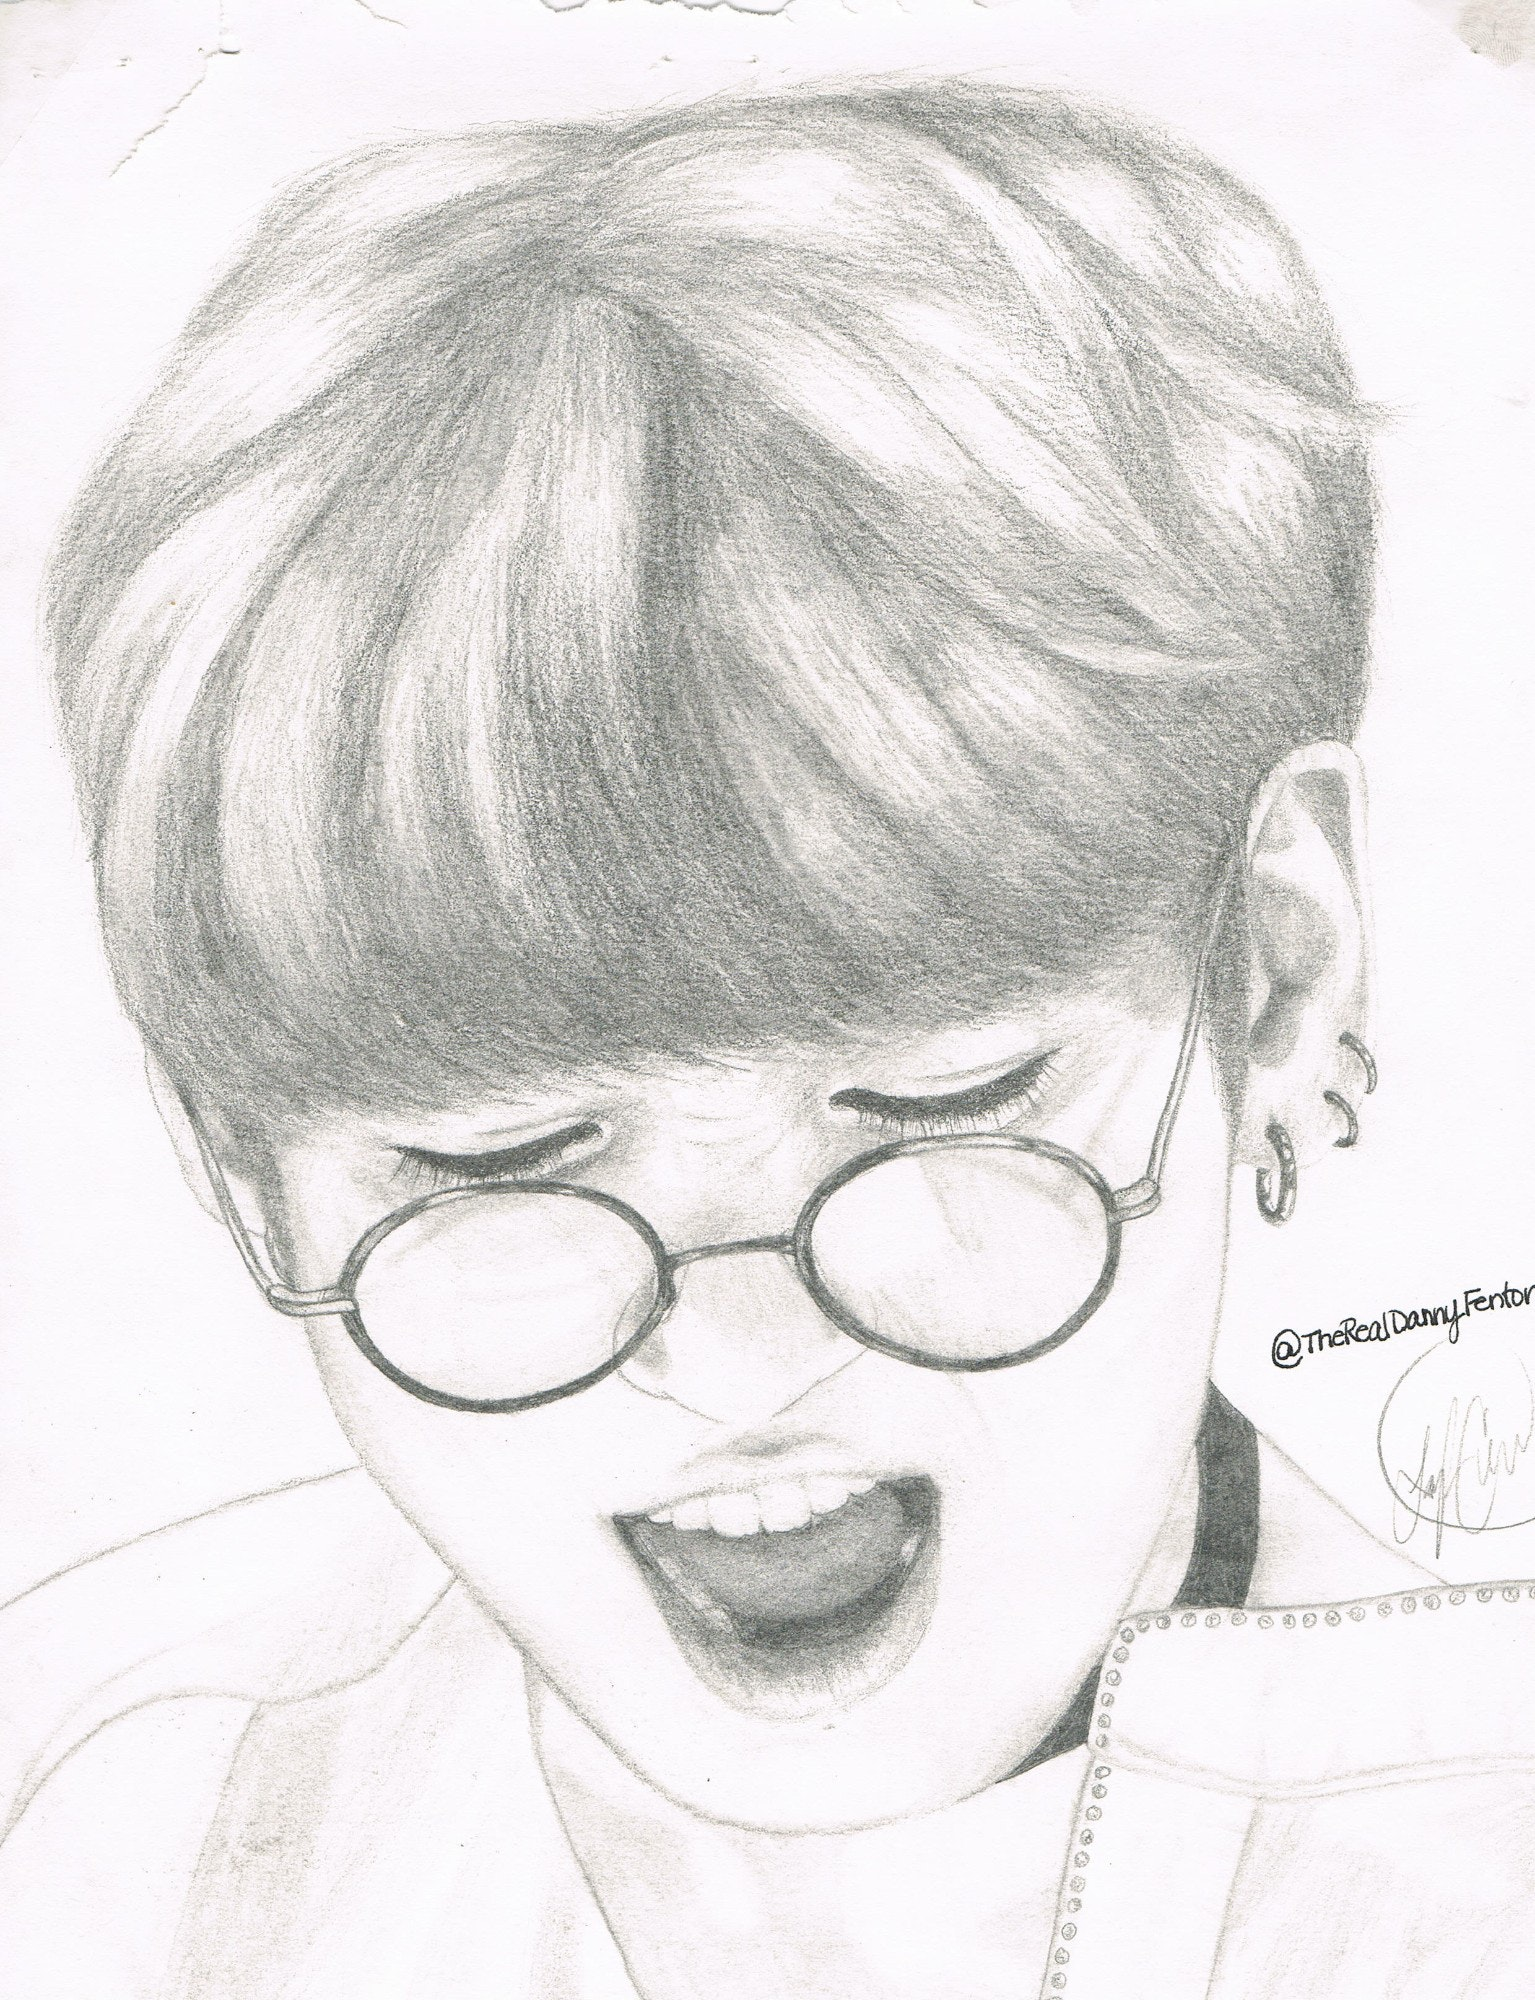 1535x2000 Bts Jeon Jungkook By Therealdannyfenton One Of My First Sketches